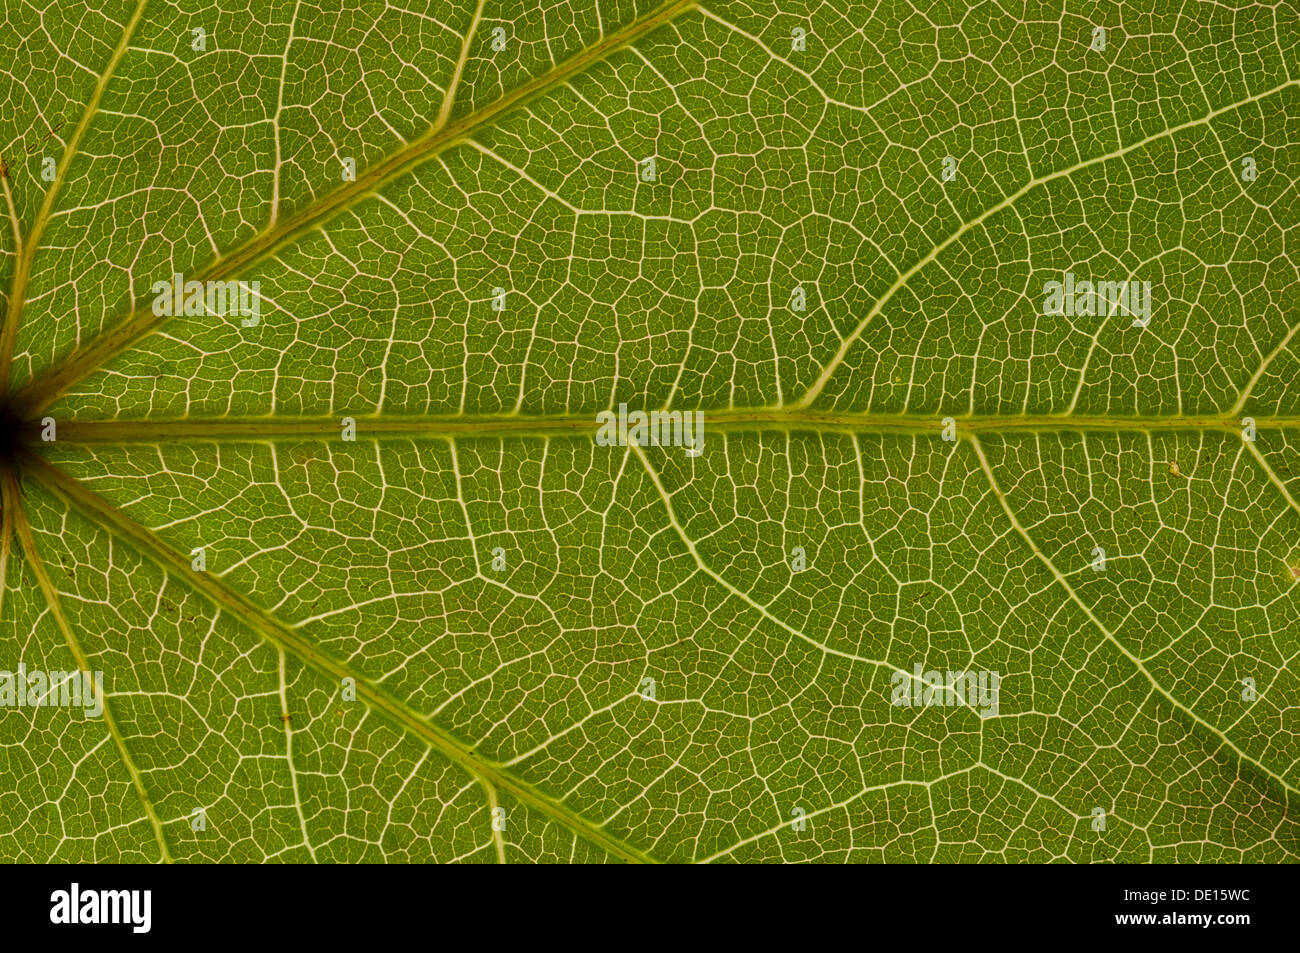 Sheet structure of the tricuspid creeper (Parthenocissus tricuspidata) in transmitted light, detail - Stock Image